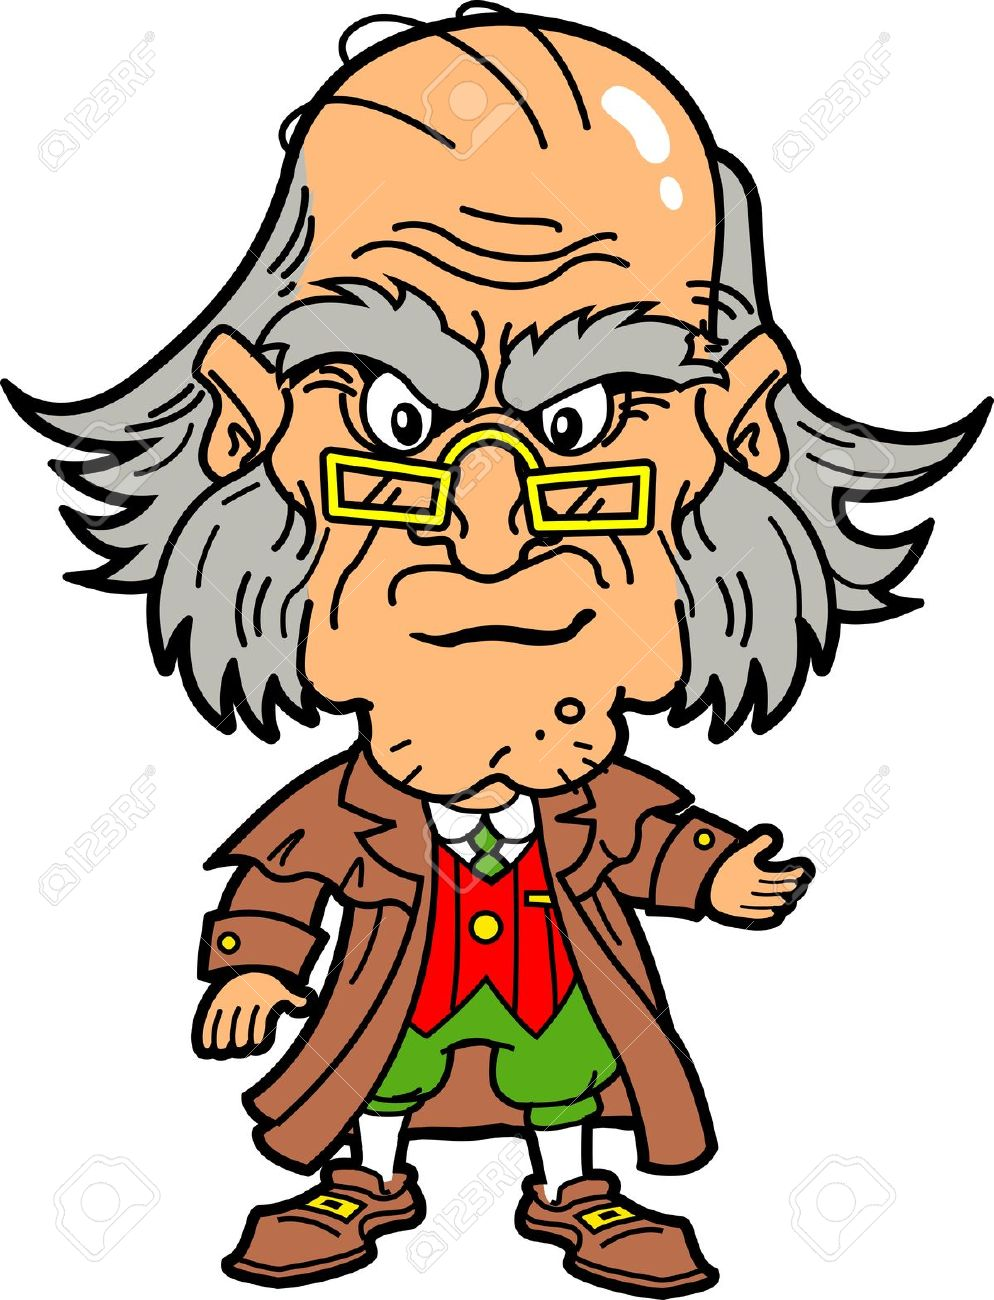 Ebenezer Scrooge Making an Angry Face at Christmas Stock Vector - 20685068